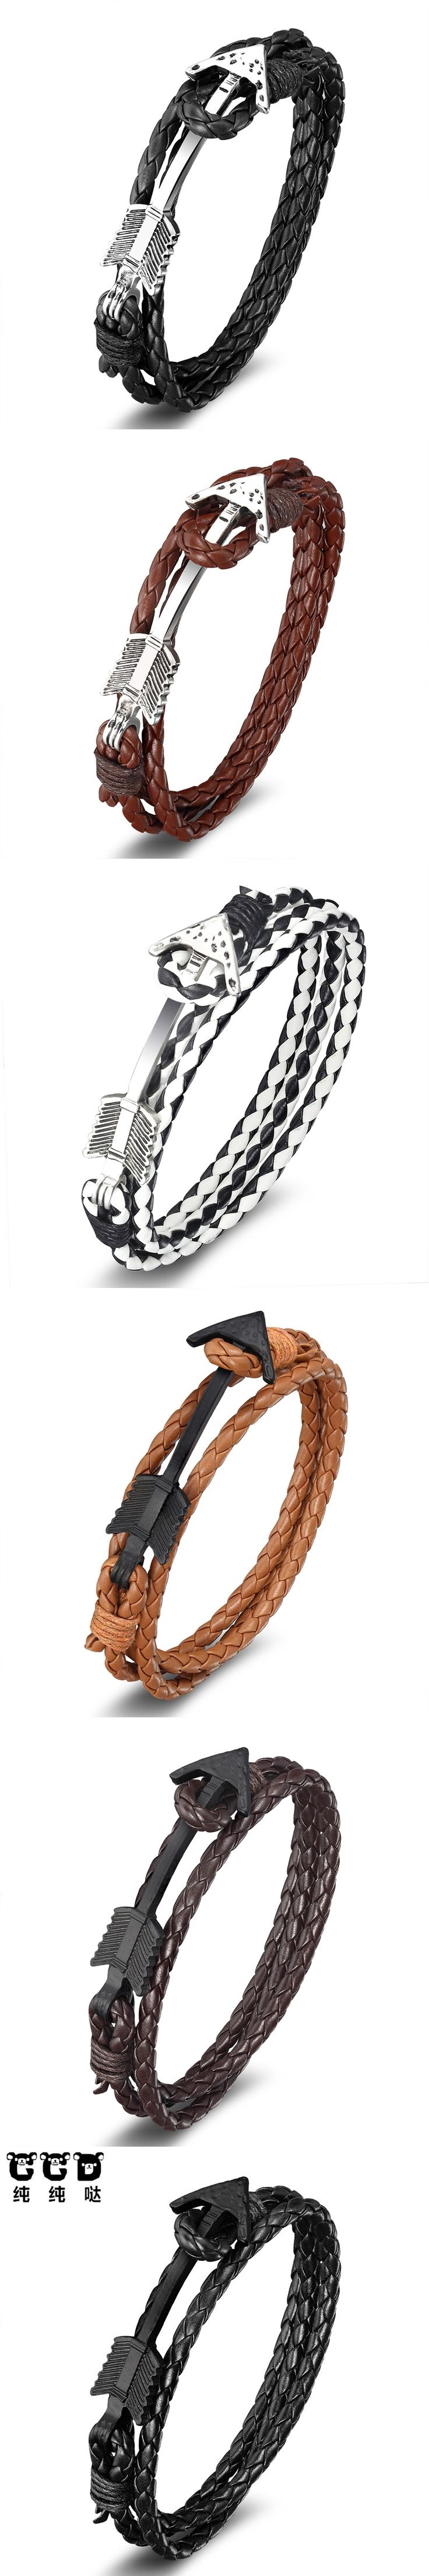 2017 new anchor design new fashion classic anchor Bracelet men's and women's anchor nylon rope male jewelry friendship bracelet